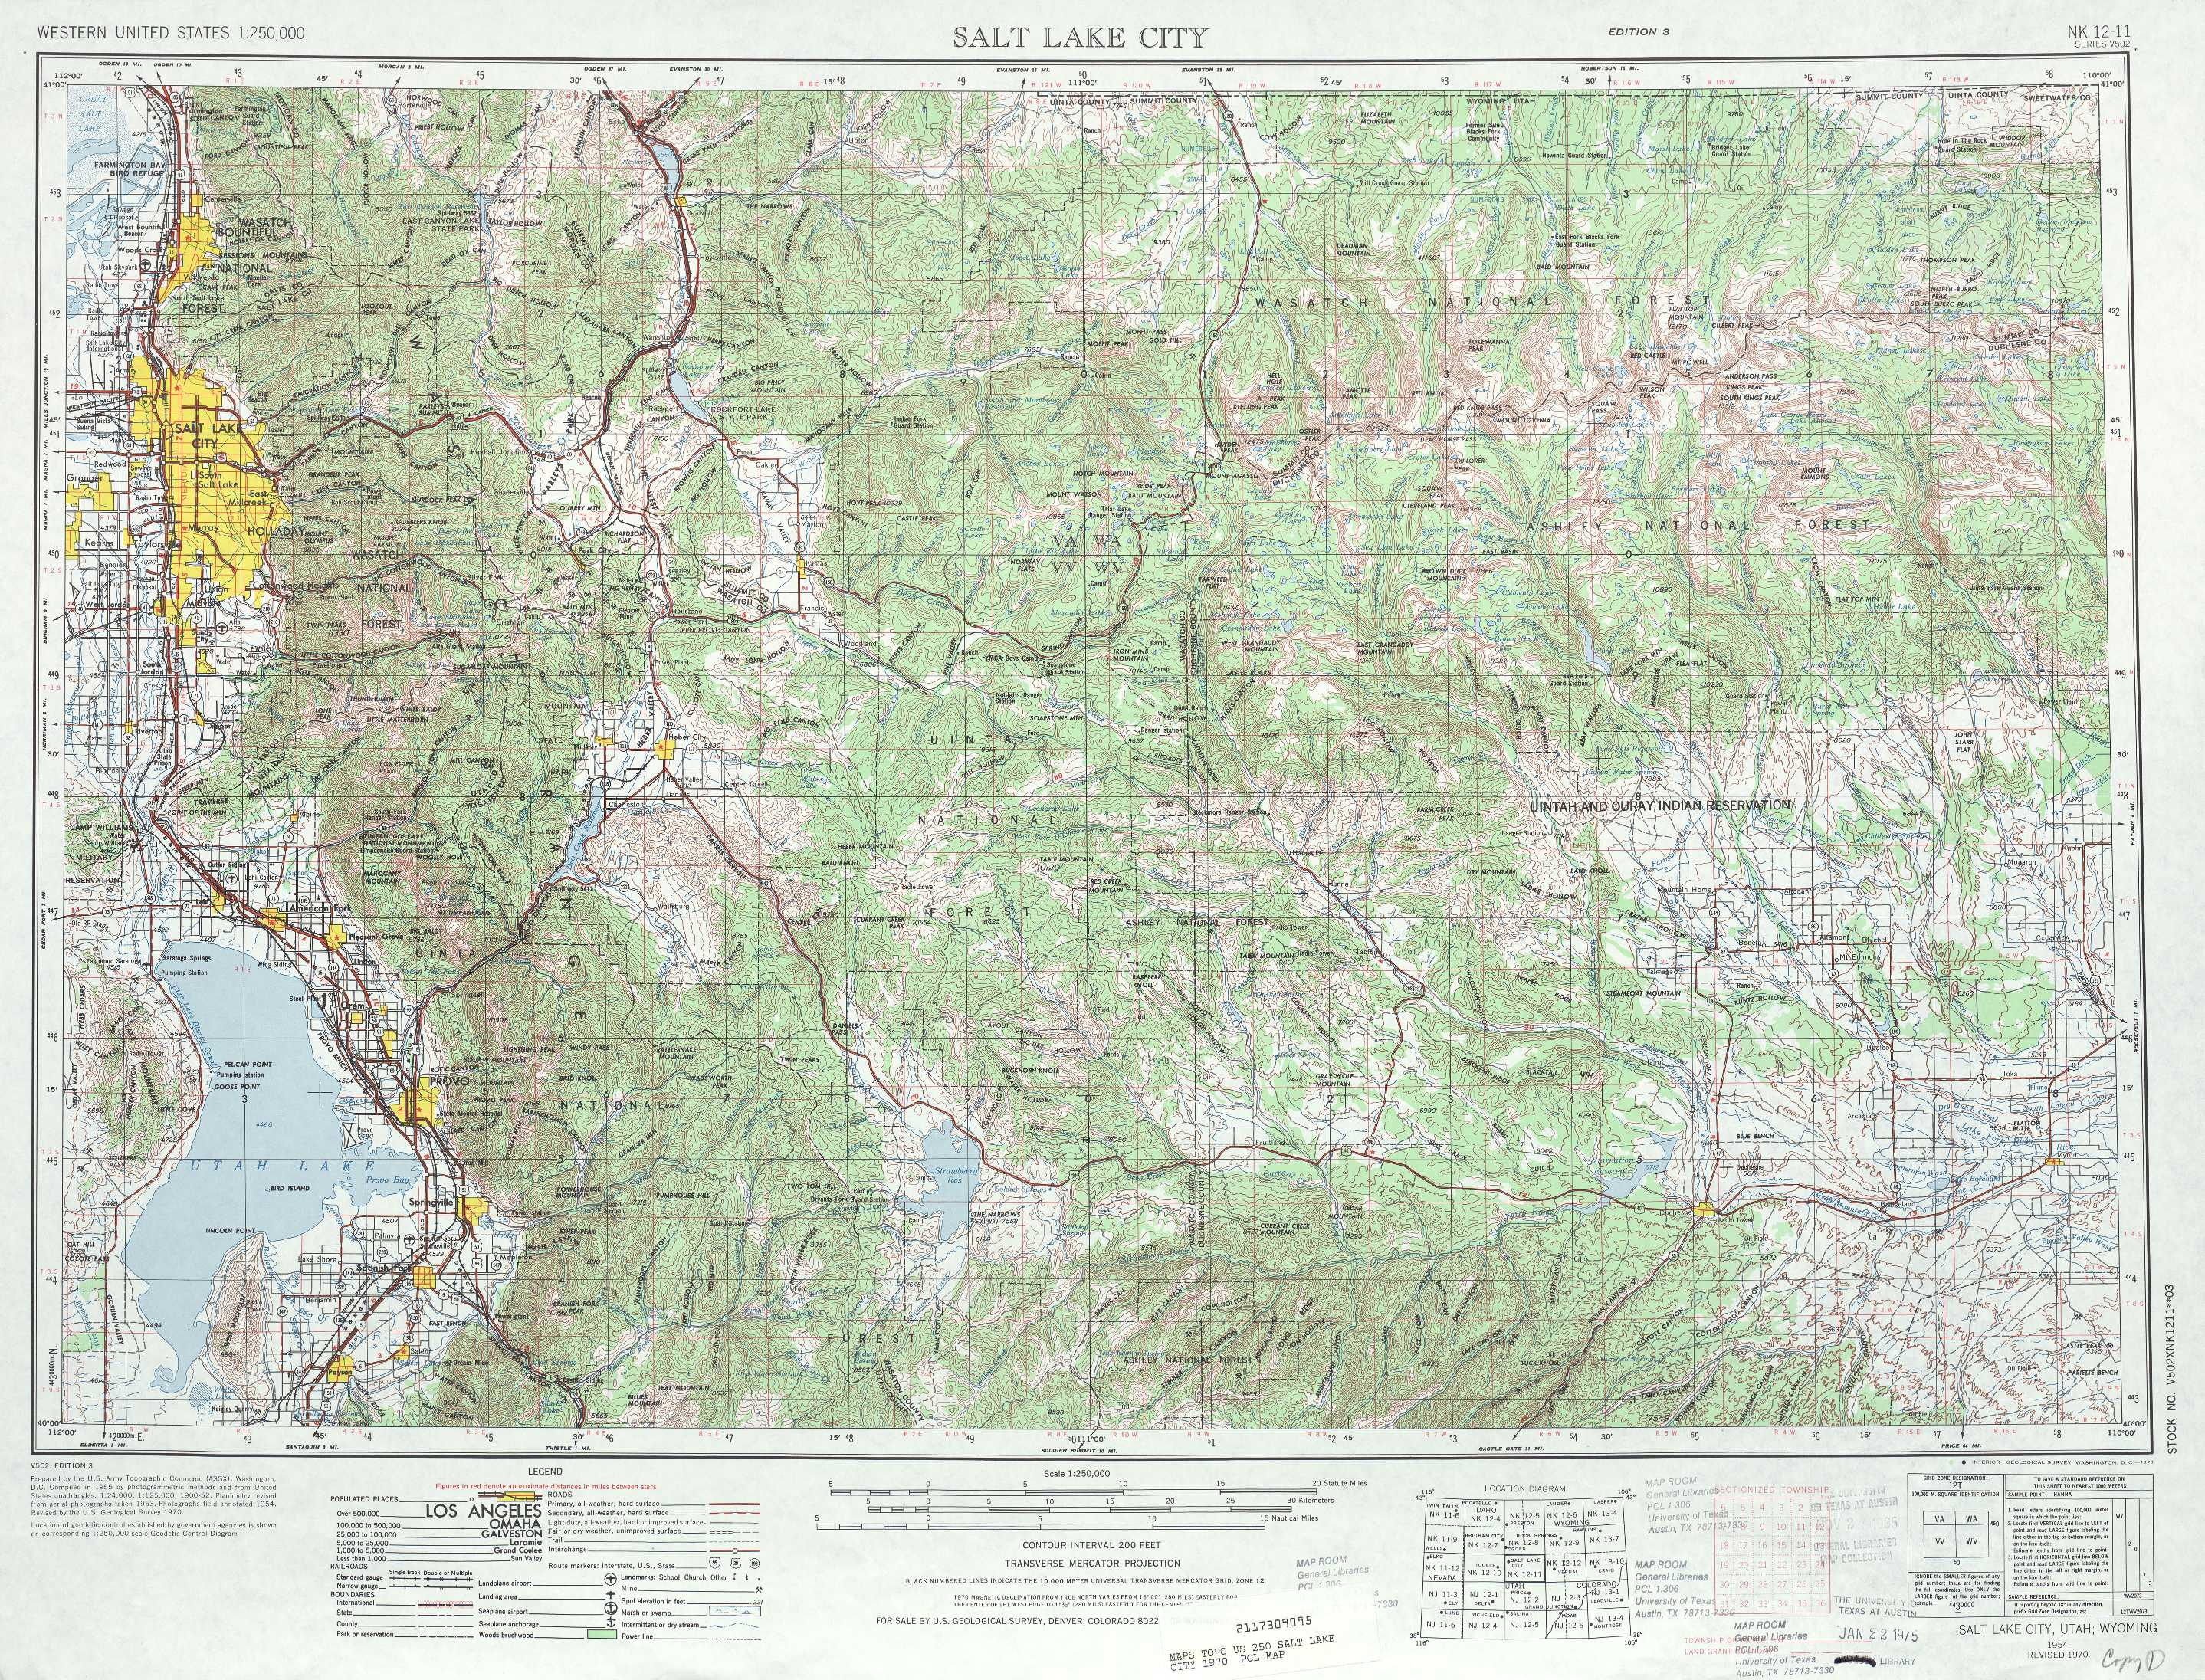 topographical map of georgia with 40110a1 on Al maps besides Wegenkaart Landkaart Argentinie Noord Argentina North Uruguay Itmb as well Battlefield Gettysburg Map together with Henry1864map together with Tokio.